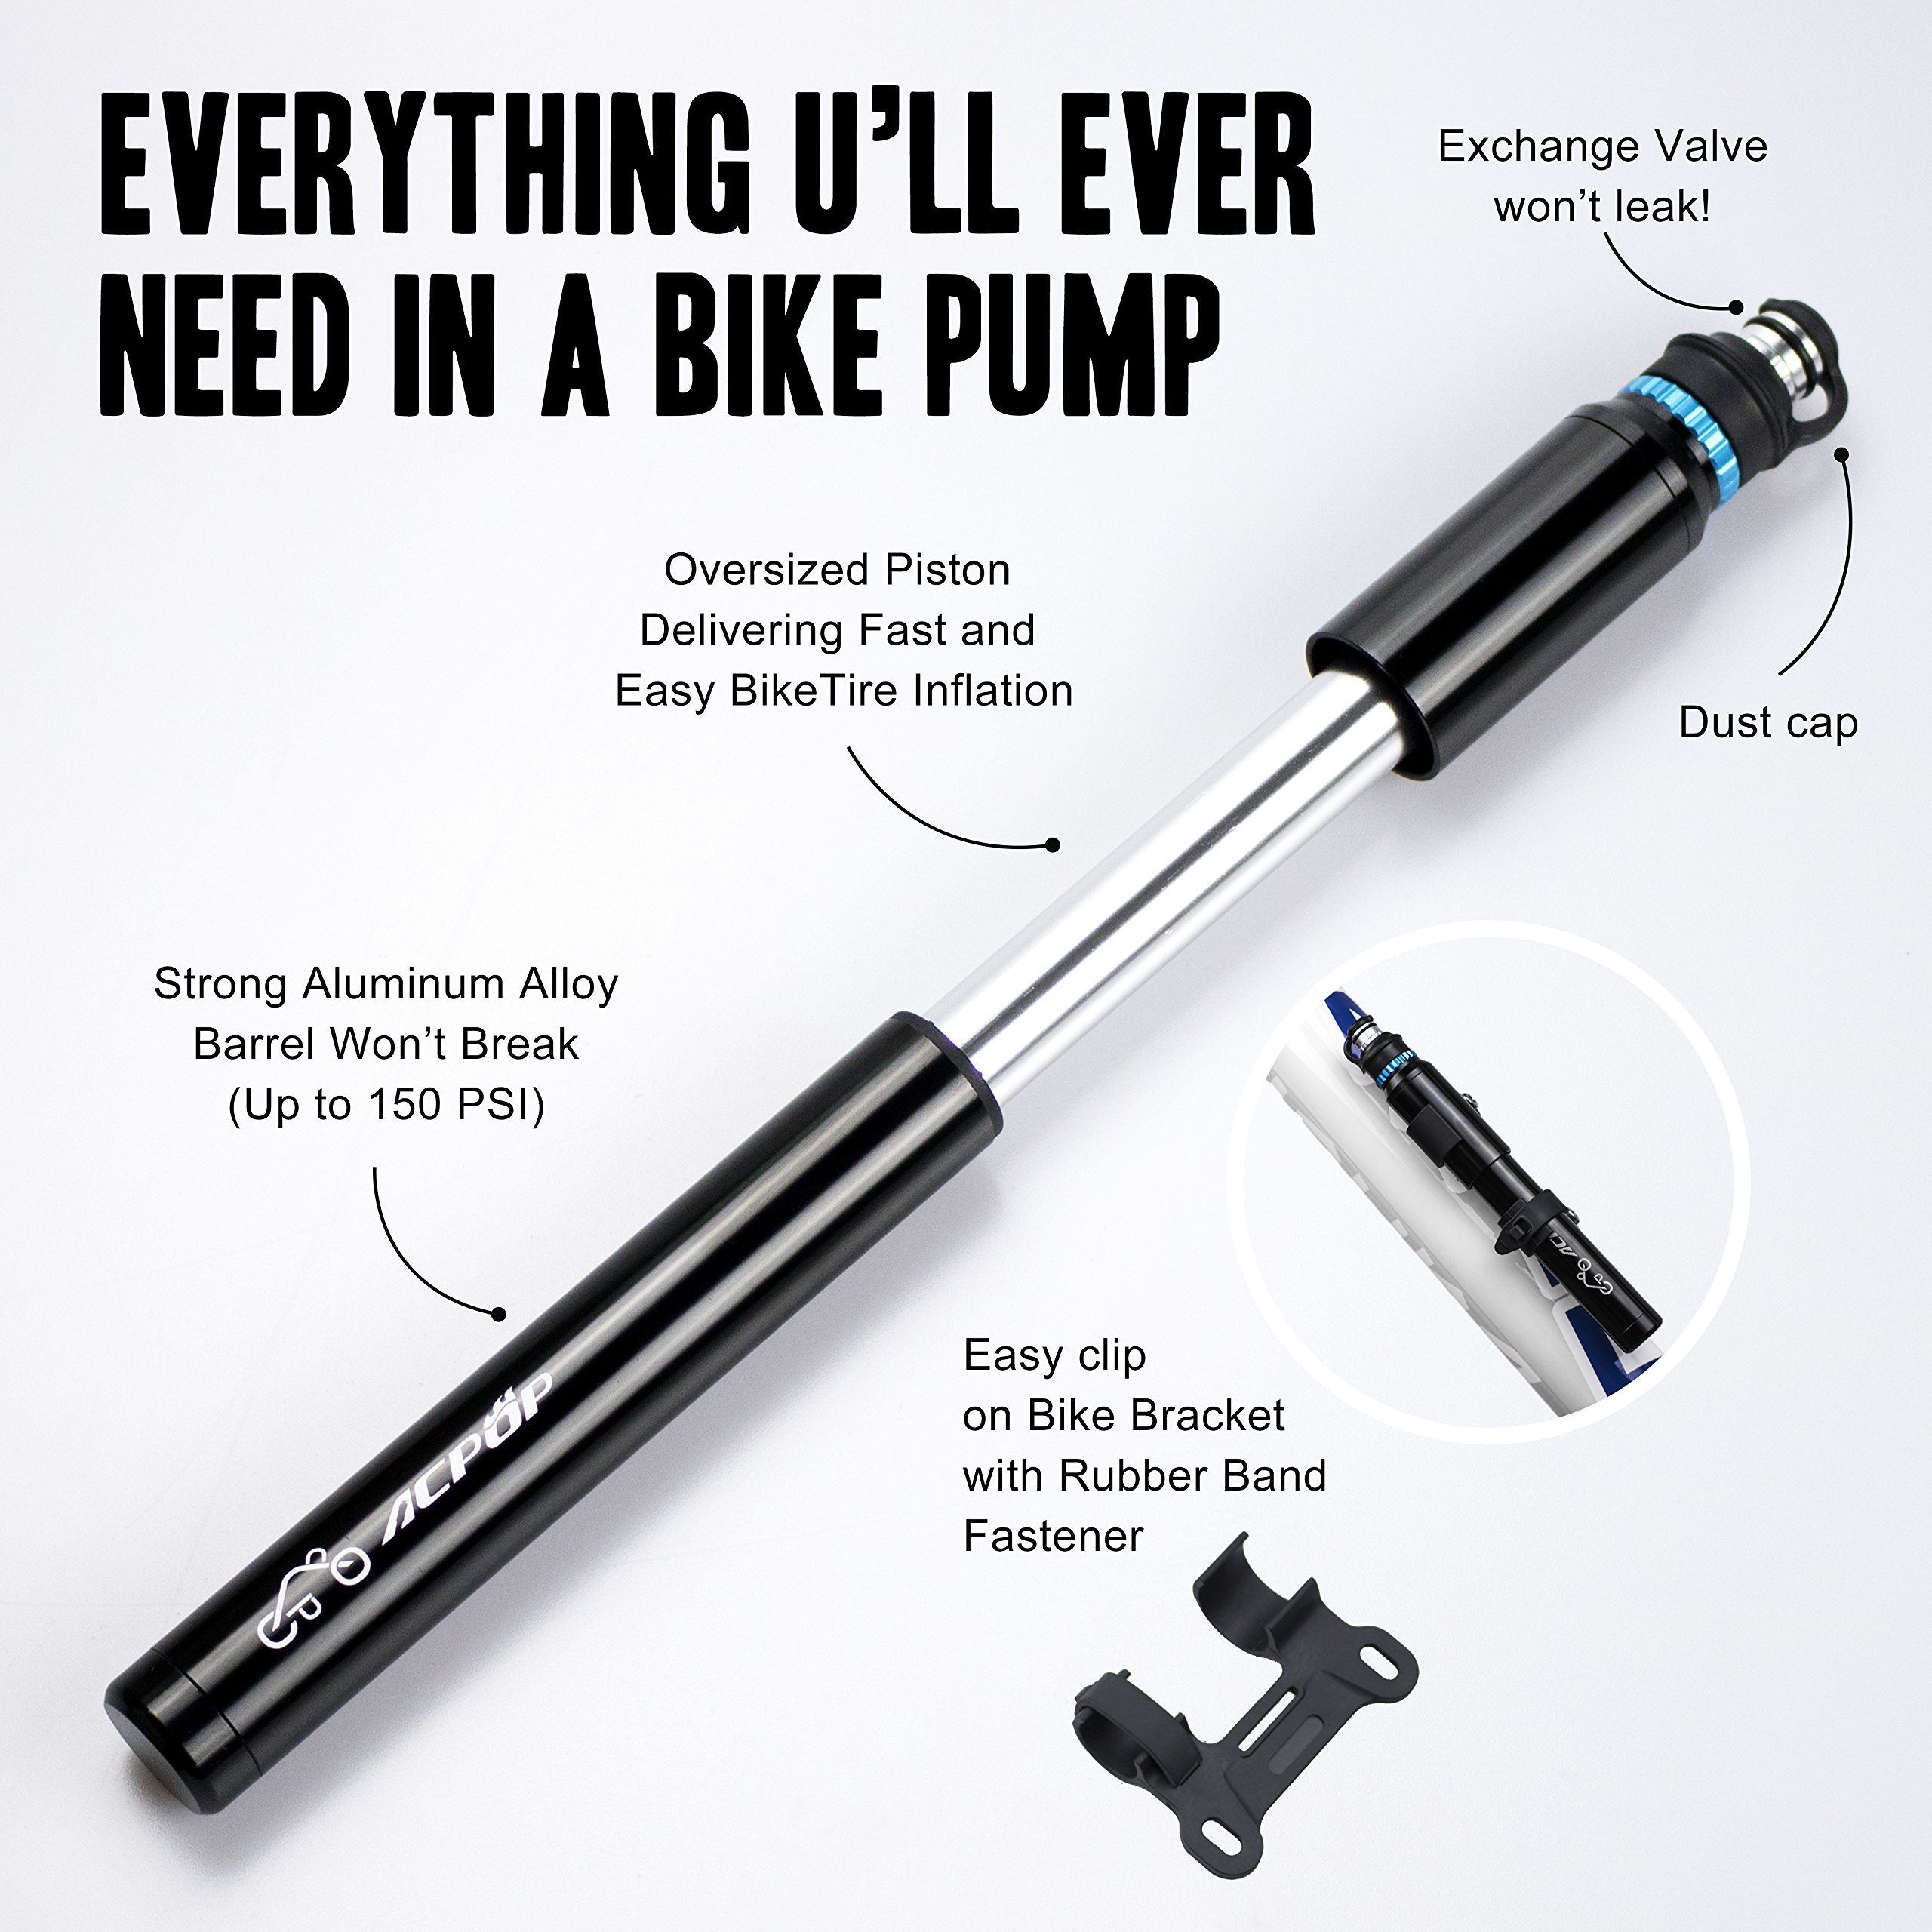 ACPOP Mini Bike Pump & Glueless Puncture Repair Kit- Fits Presta & Schrader- High Pressure 150 PSI - Bicycle Tire Pump for Road, Mountain and BMX Bikes, 6.6 Inches by ACPOP (Image #5)